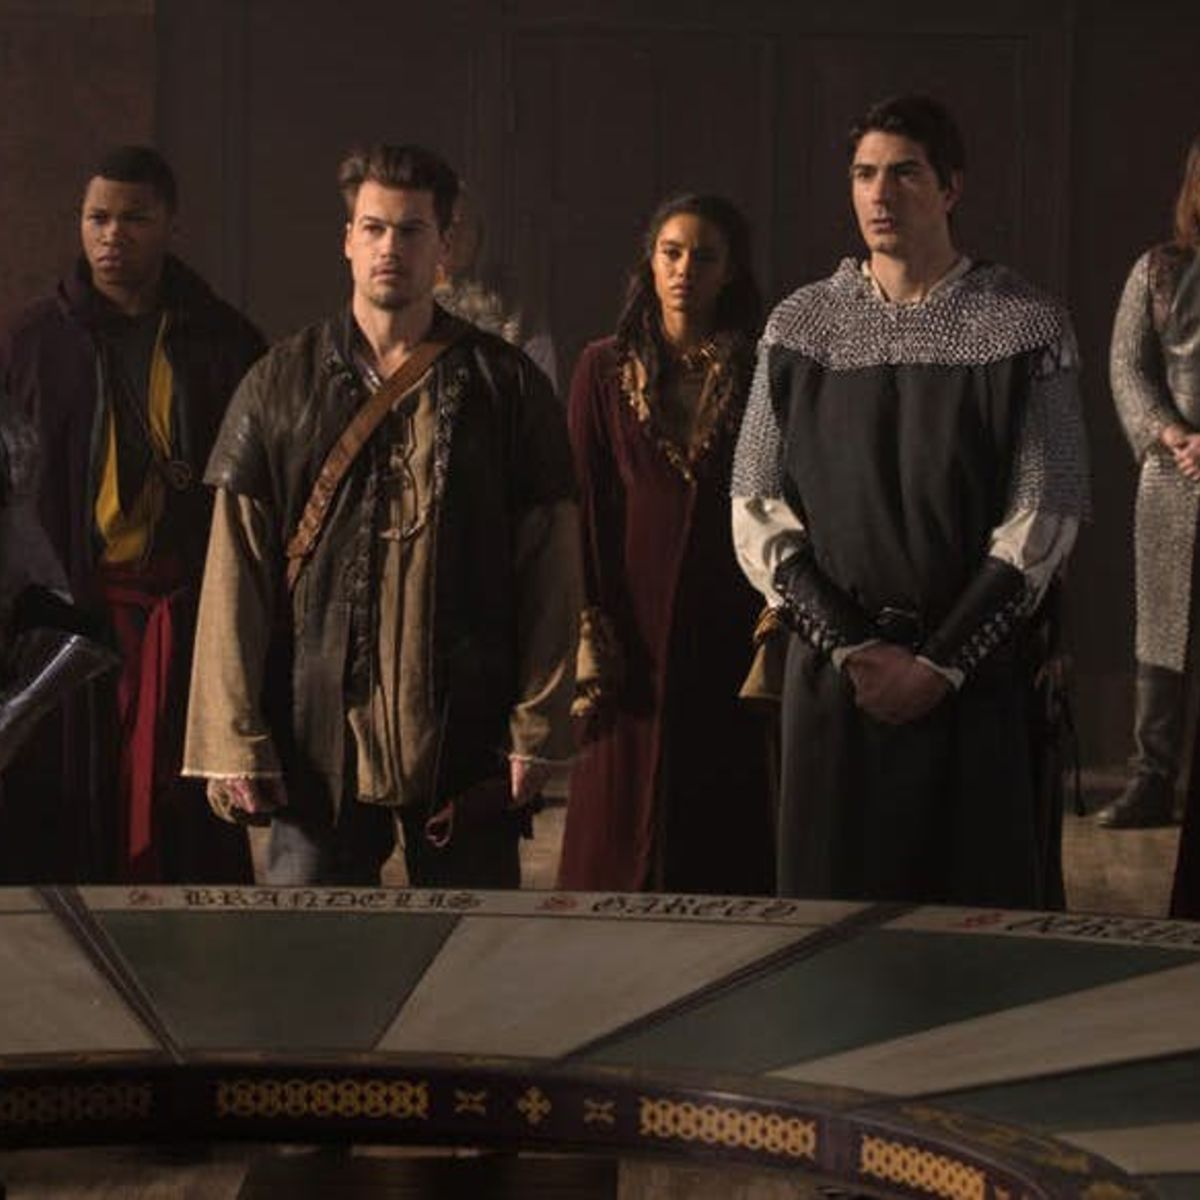 Legends-of-Tomorrow-Camelot-3000-King-Arthurs-round-table.jpg